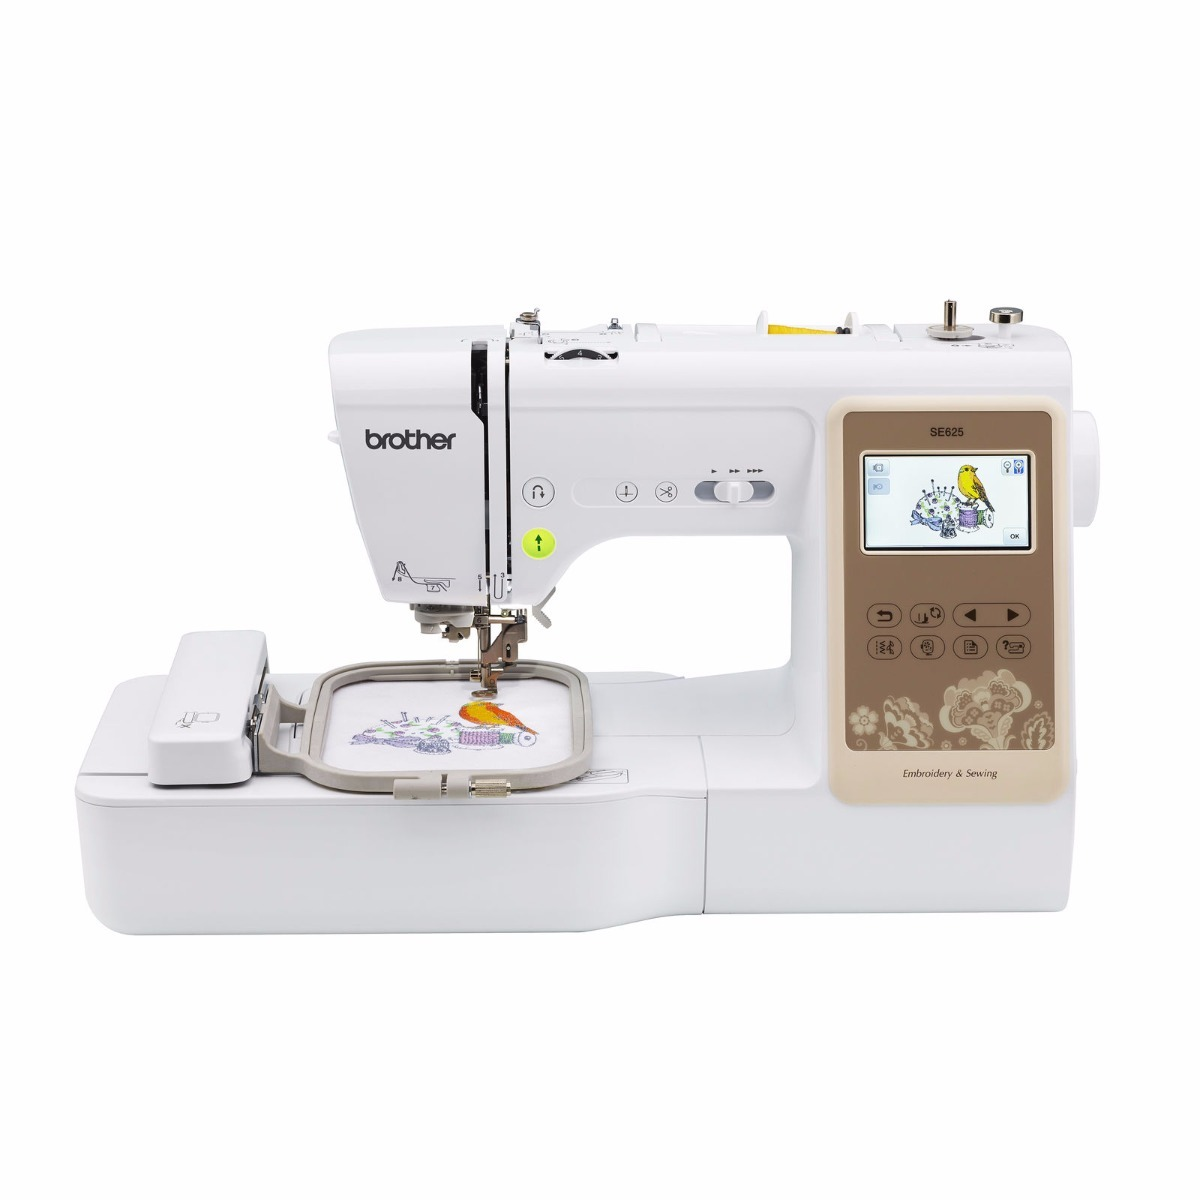 Brother Se625 Bordadora Coser 280 Diseños103 Puntadas 10x10w ...